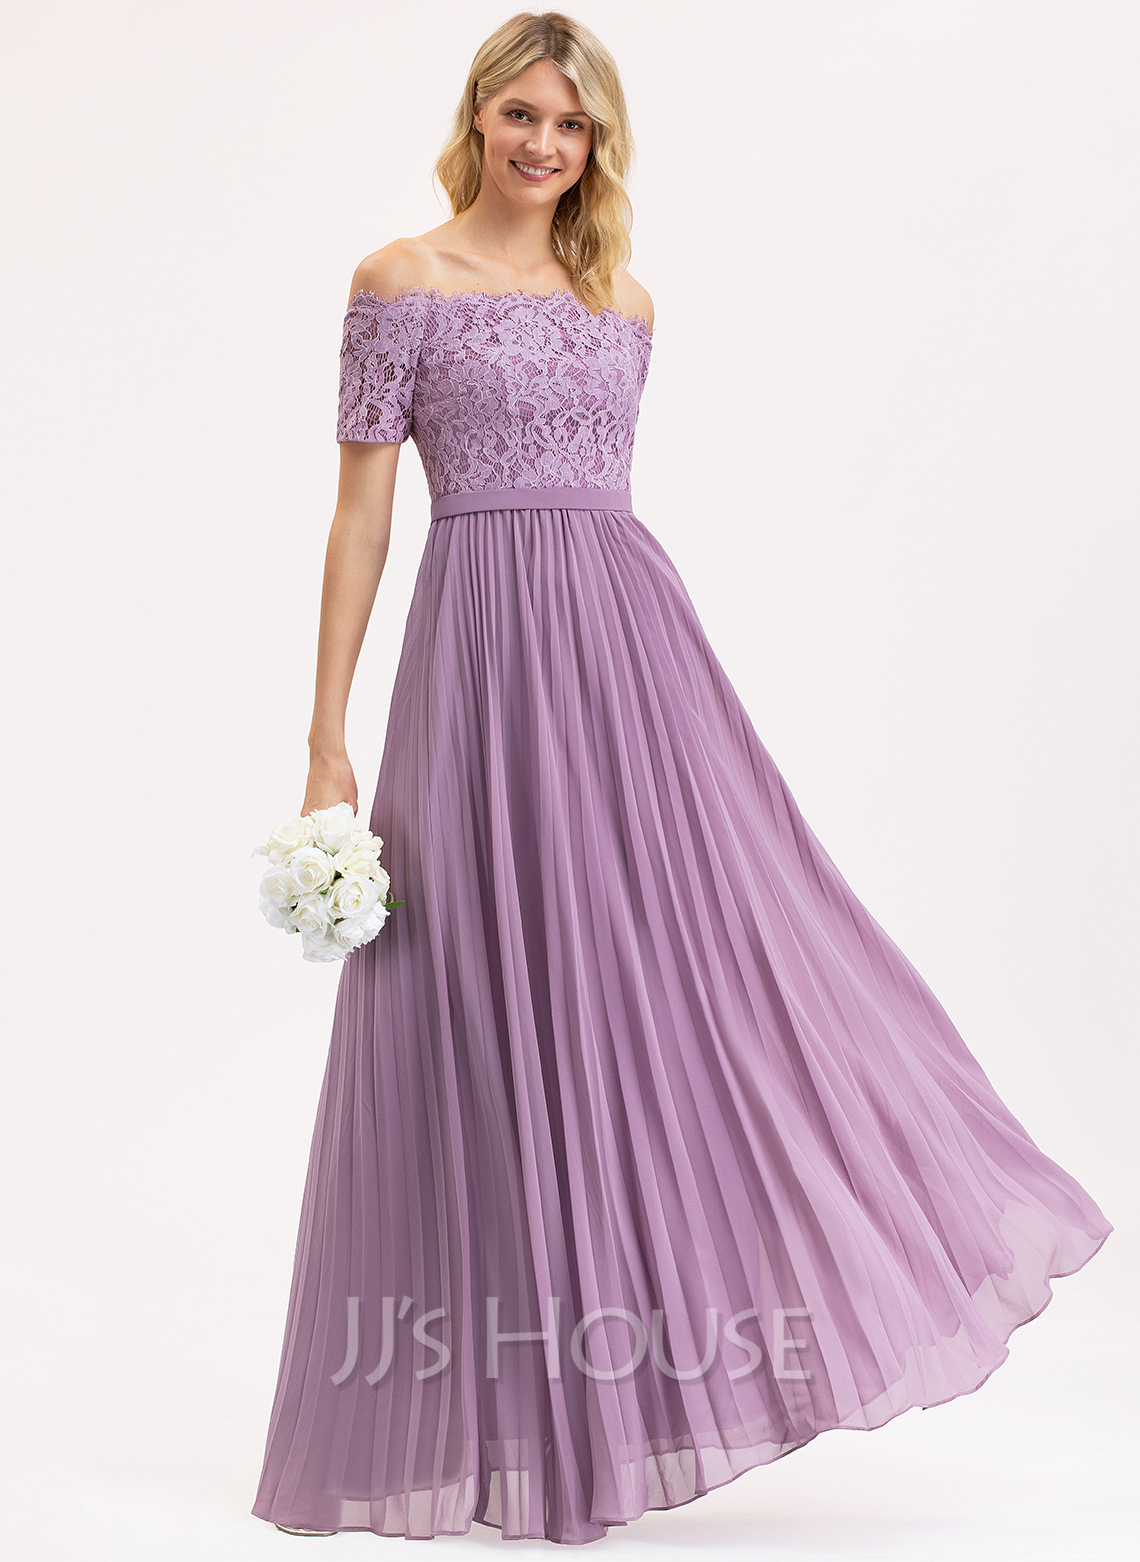 Off-the-Shoulder Floor-Length Chiffon Lace Bridesmaid Dress With Pleated